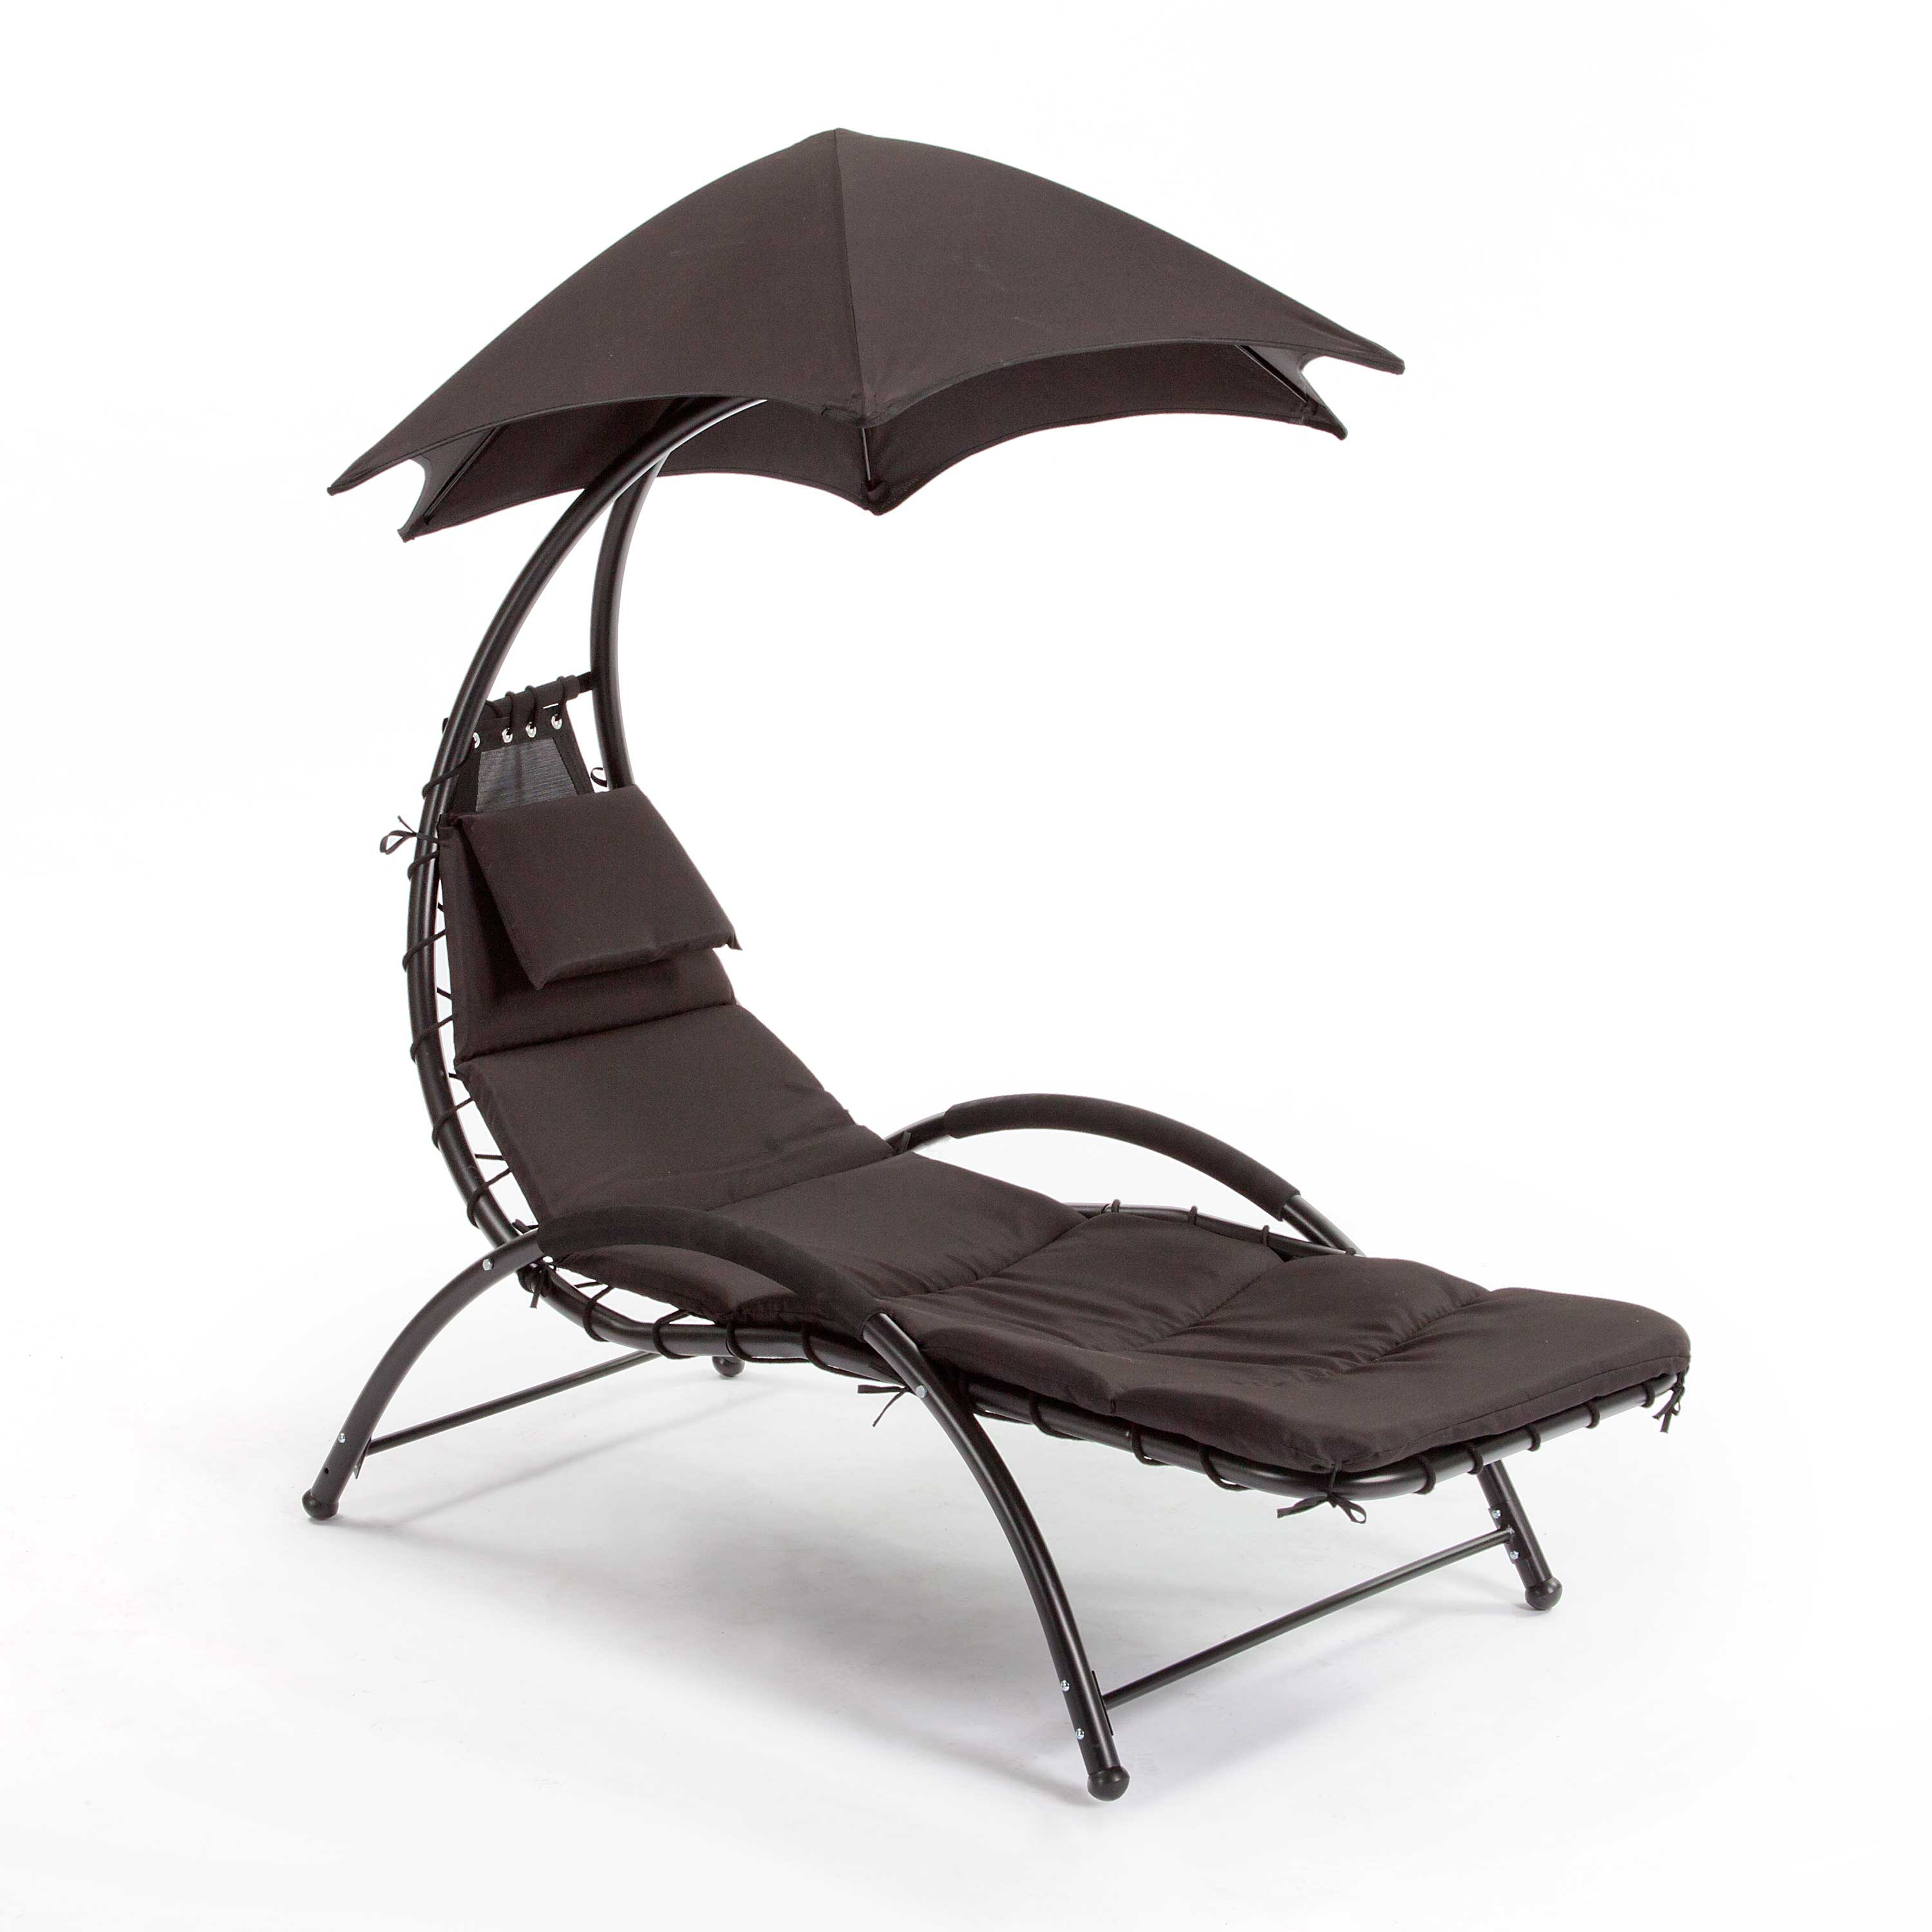 Suntime Black Helicopter Sun Lounger